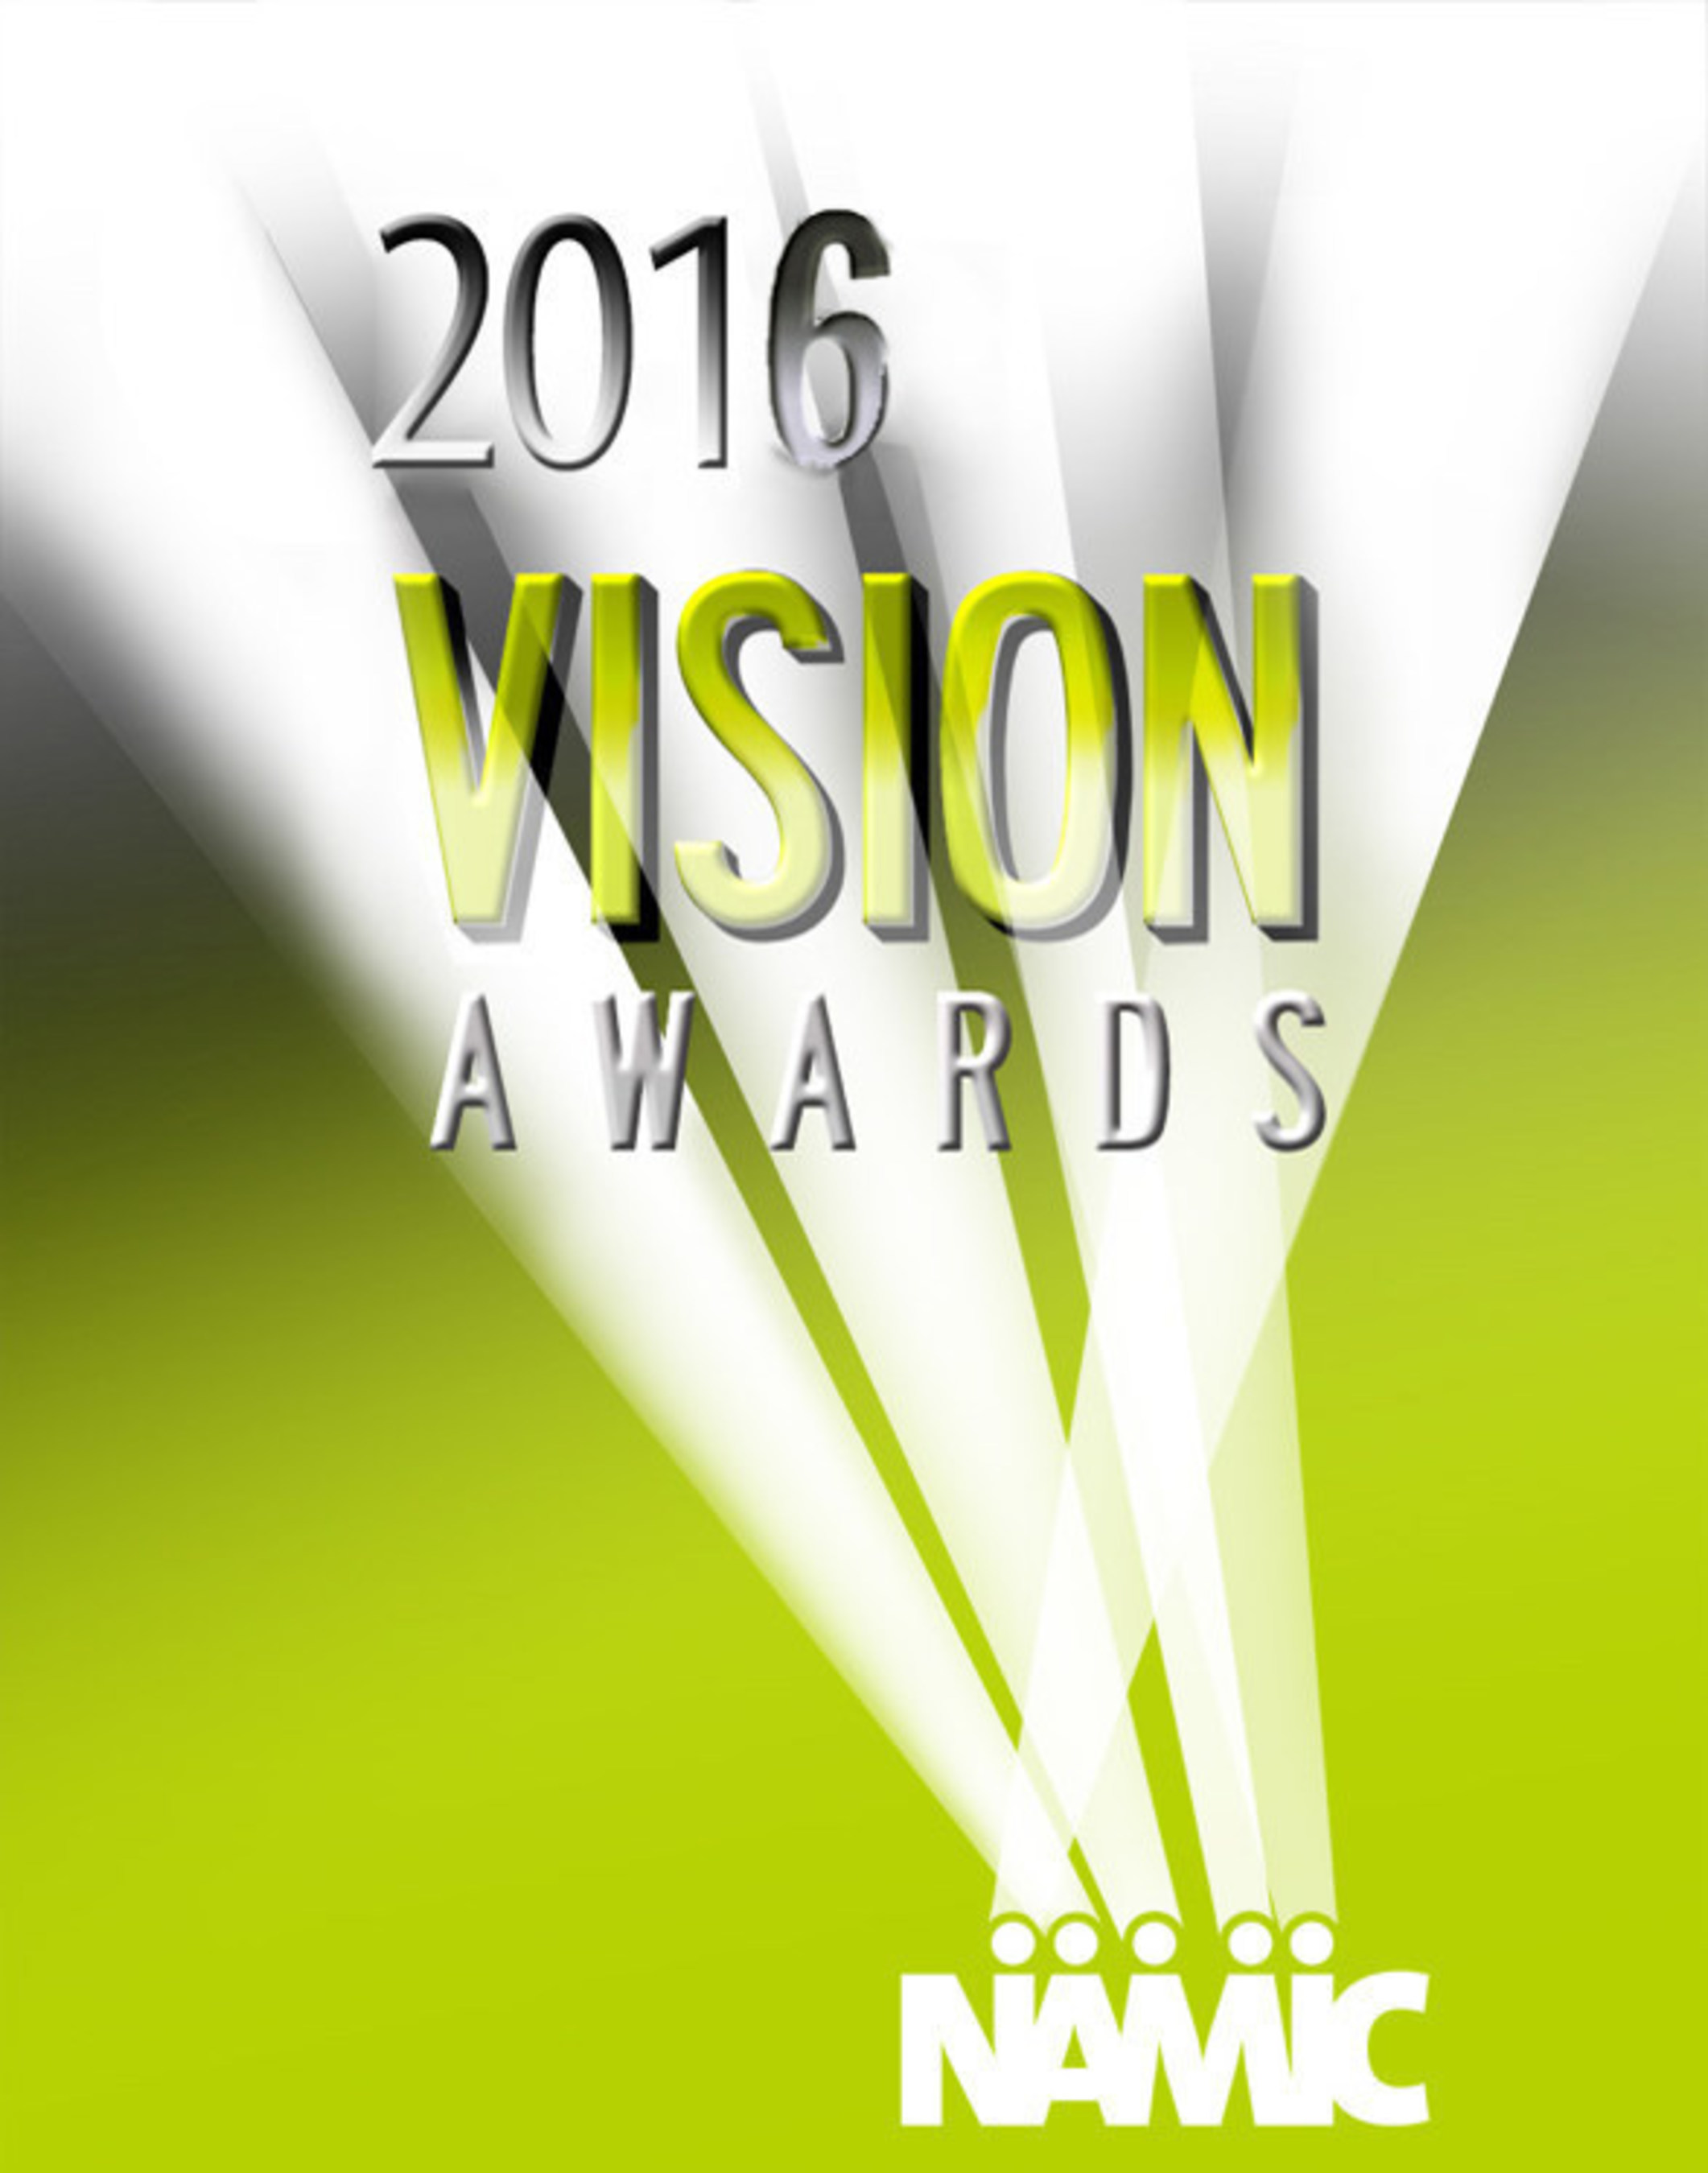 22nd Annual NAMIC Vision Awards Nominations Announced